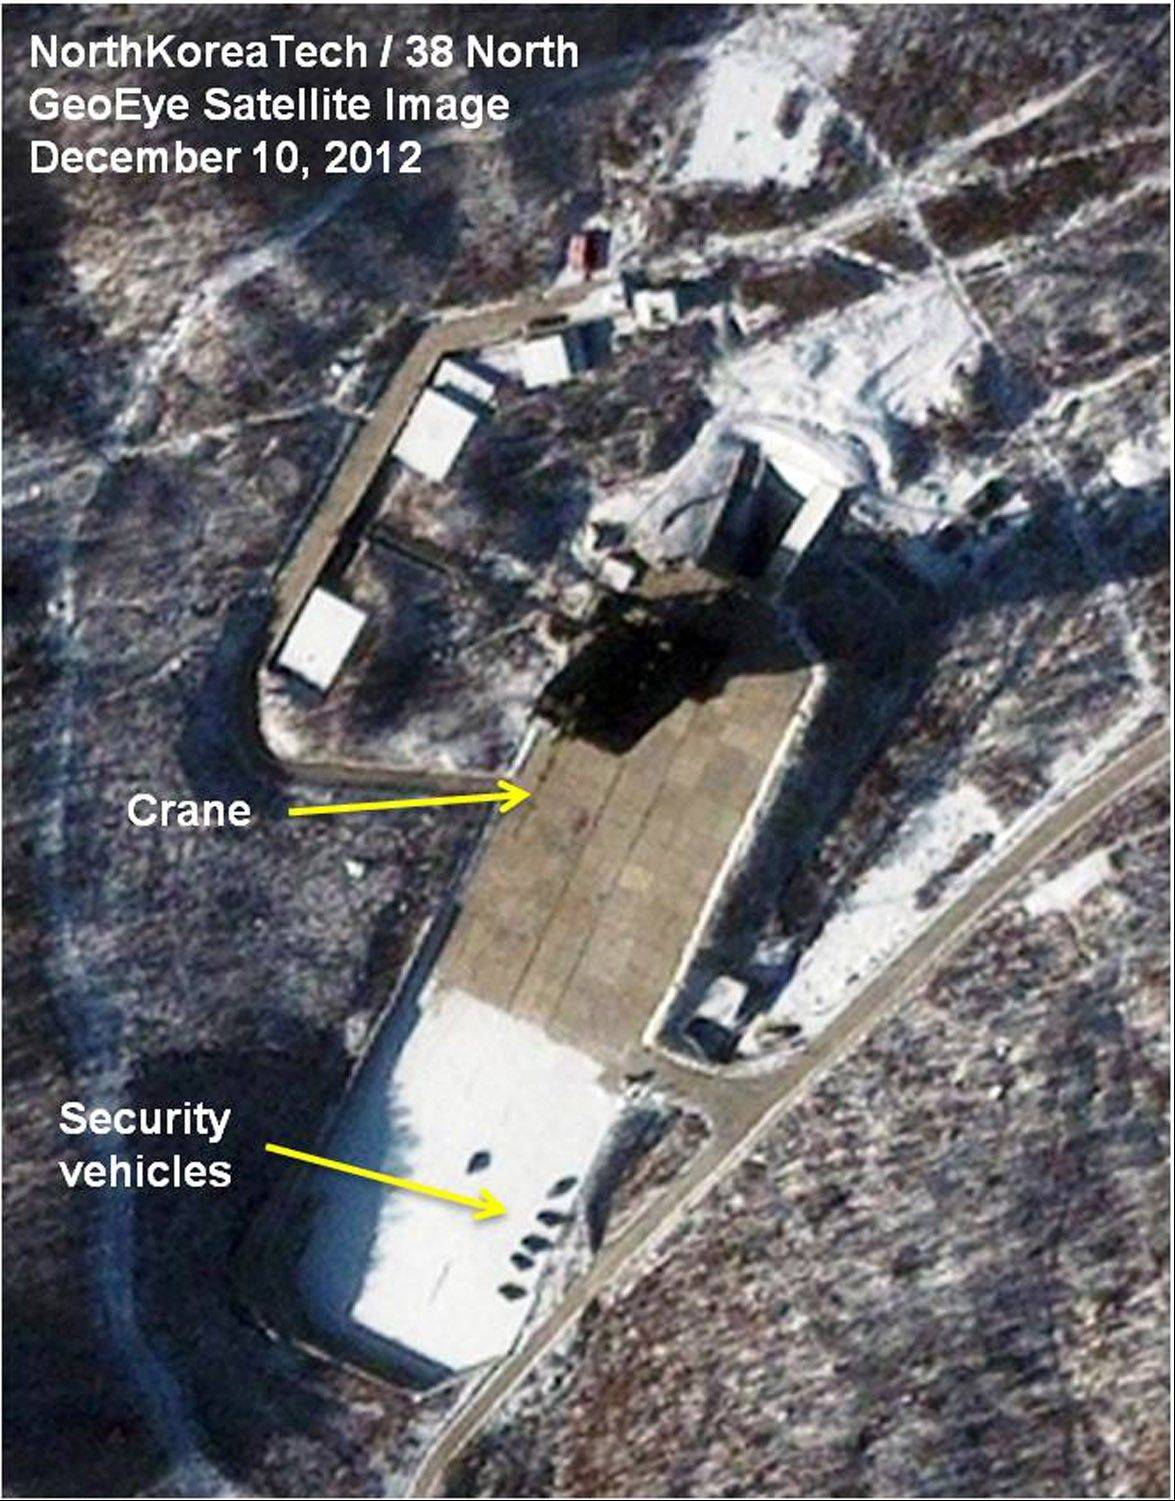 This satellite image provided Monday by GeoEye and annotated by 38 North, shows recent activity at the Sohae rocket launching facility in Cholsan County, North Pyongan province, North Korea.